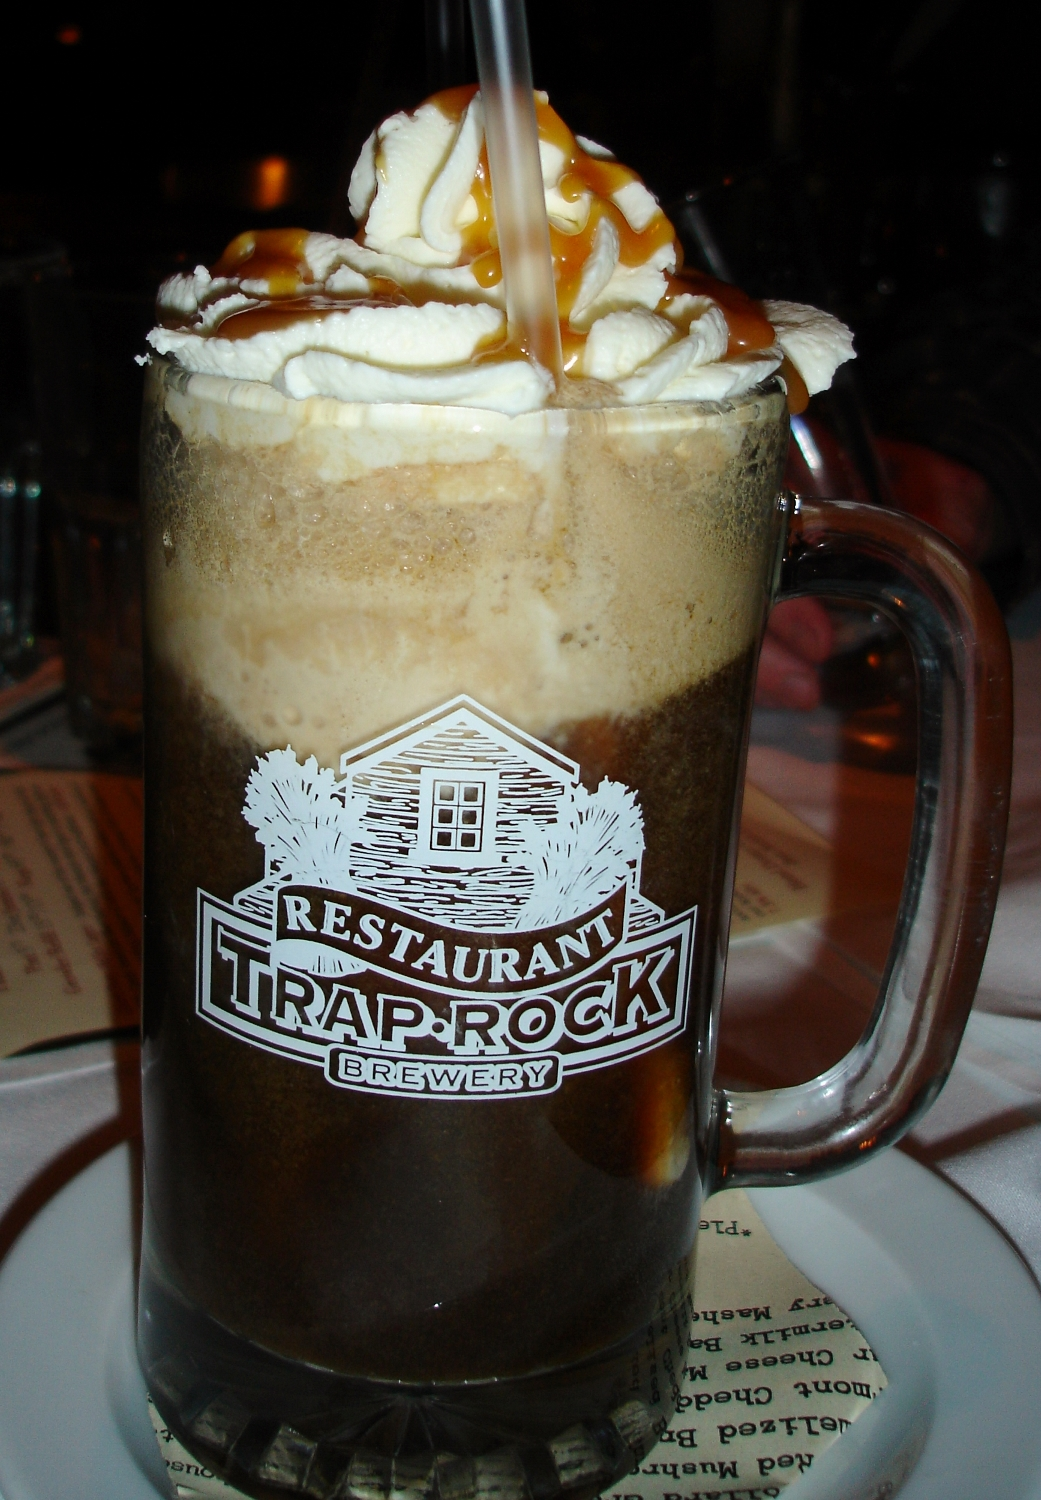 The beer float is made with their rich, dark porter but, you know what? We're not sold on this in-vogue idea. Root beer is a better base for ice cream, whipped cream, and caramel sauce.